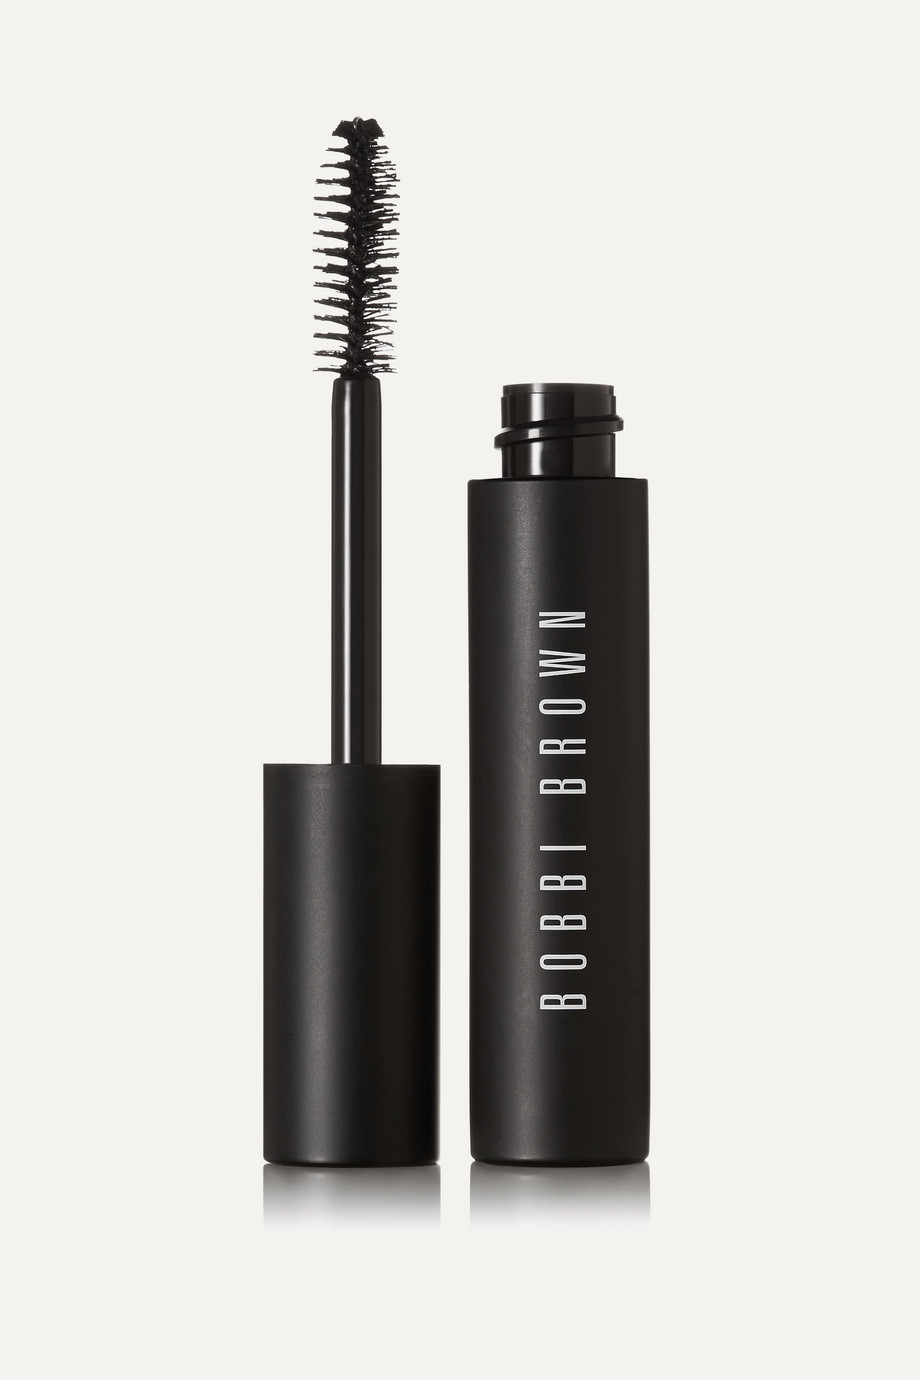 Bobbi Brown Eye Opening Mascara – Mascara